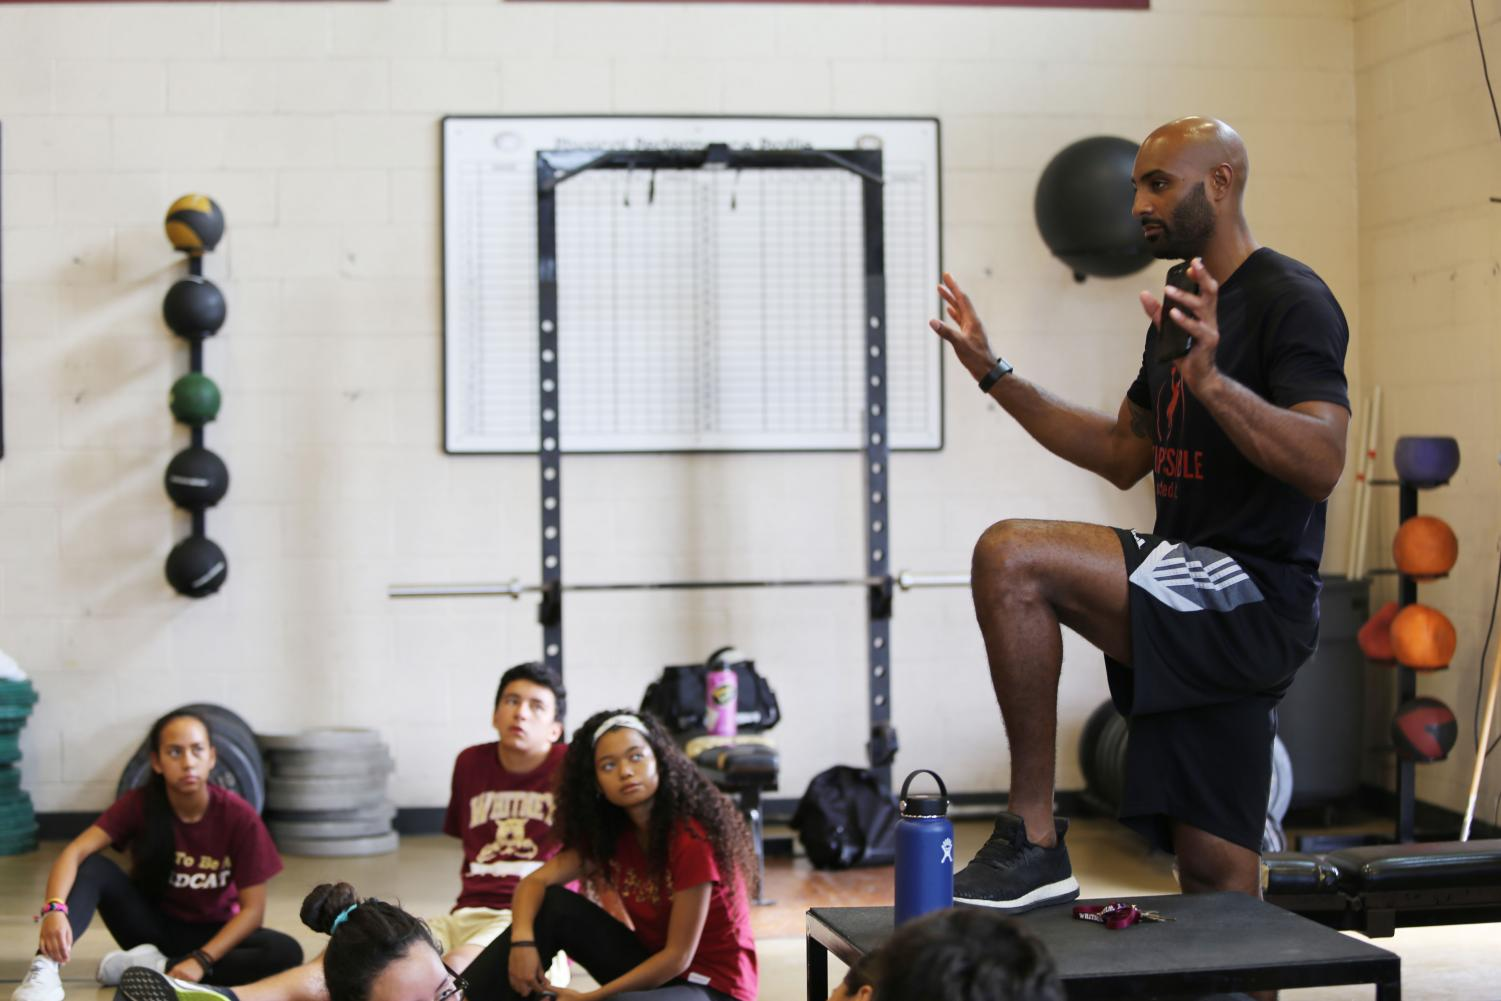 During second period weights training, Mr. John Pichon discusses his goals for the class with his students by explaining the purpose of their workouts. Photo by Aviana Loveall.